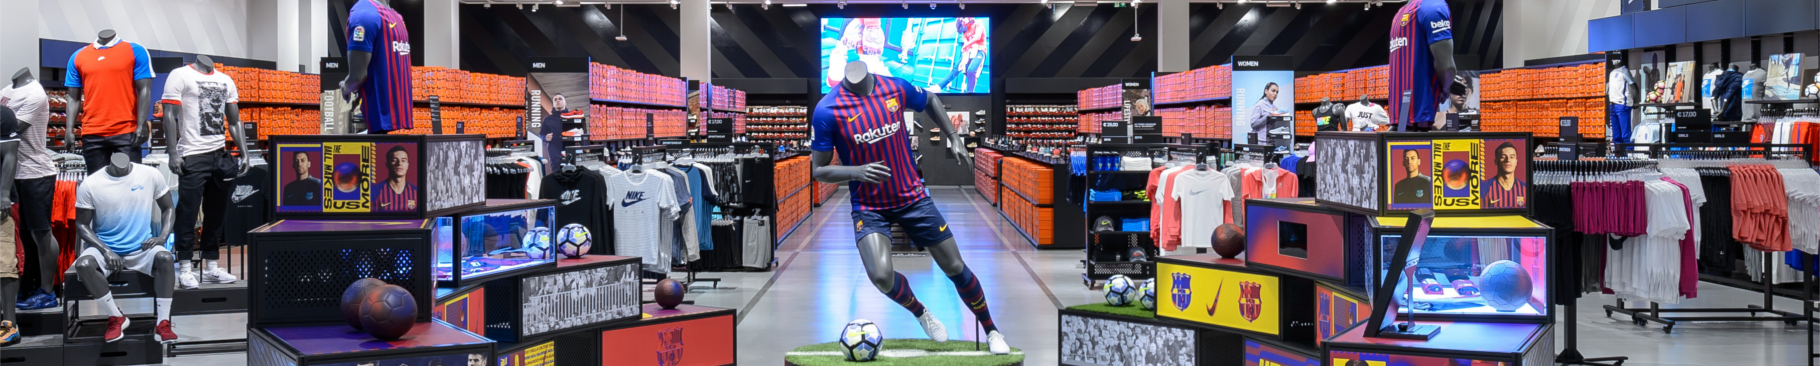 Thinking Big: Delivering Nike's largest factory store in Europe